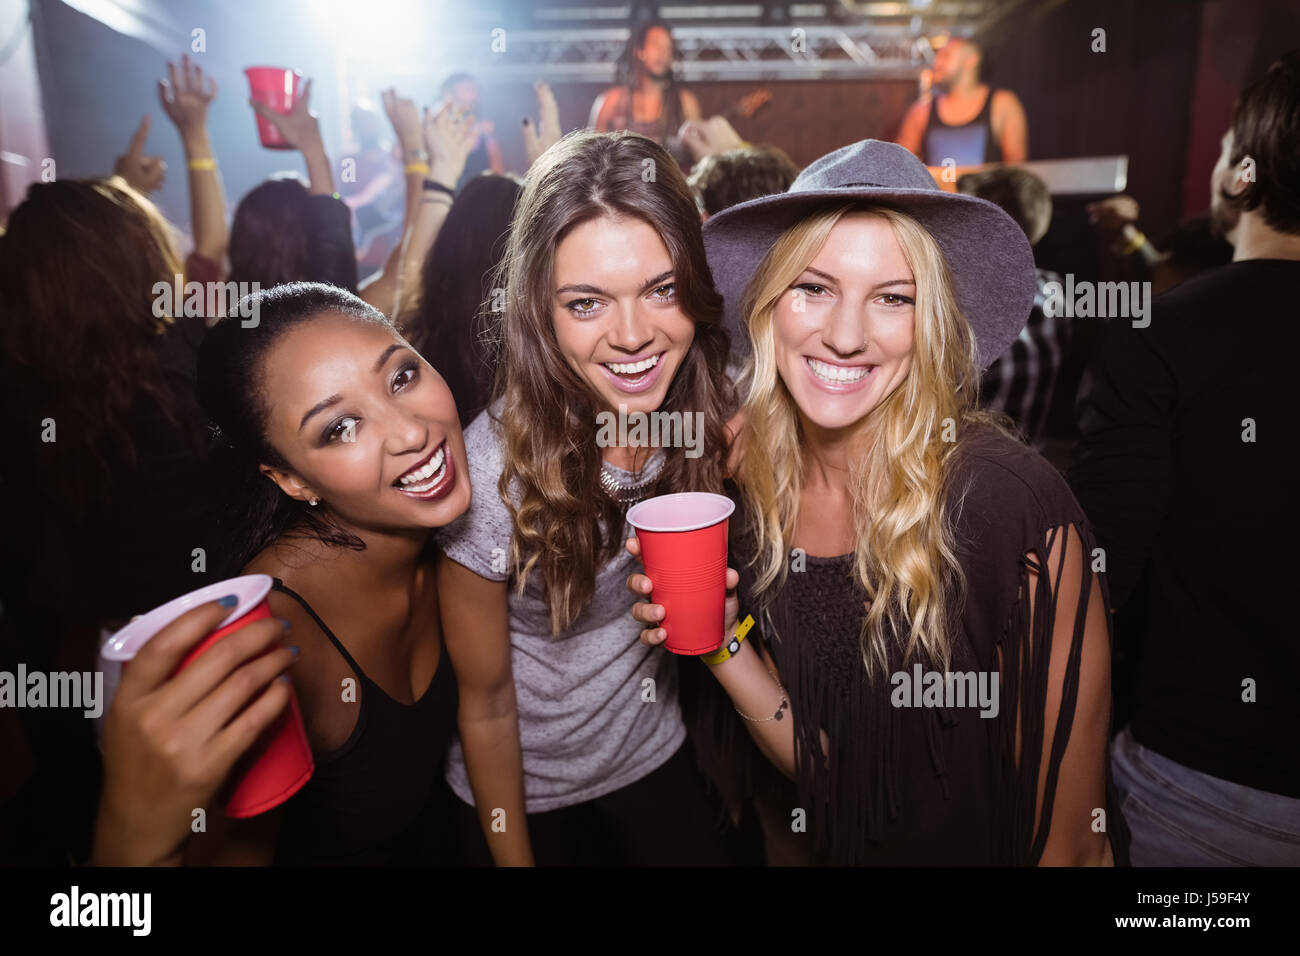 Portrait of female friends with disposable cups enjoying music in nightclub - Stock Image